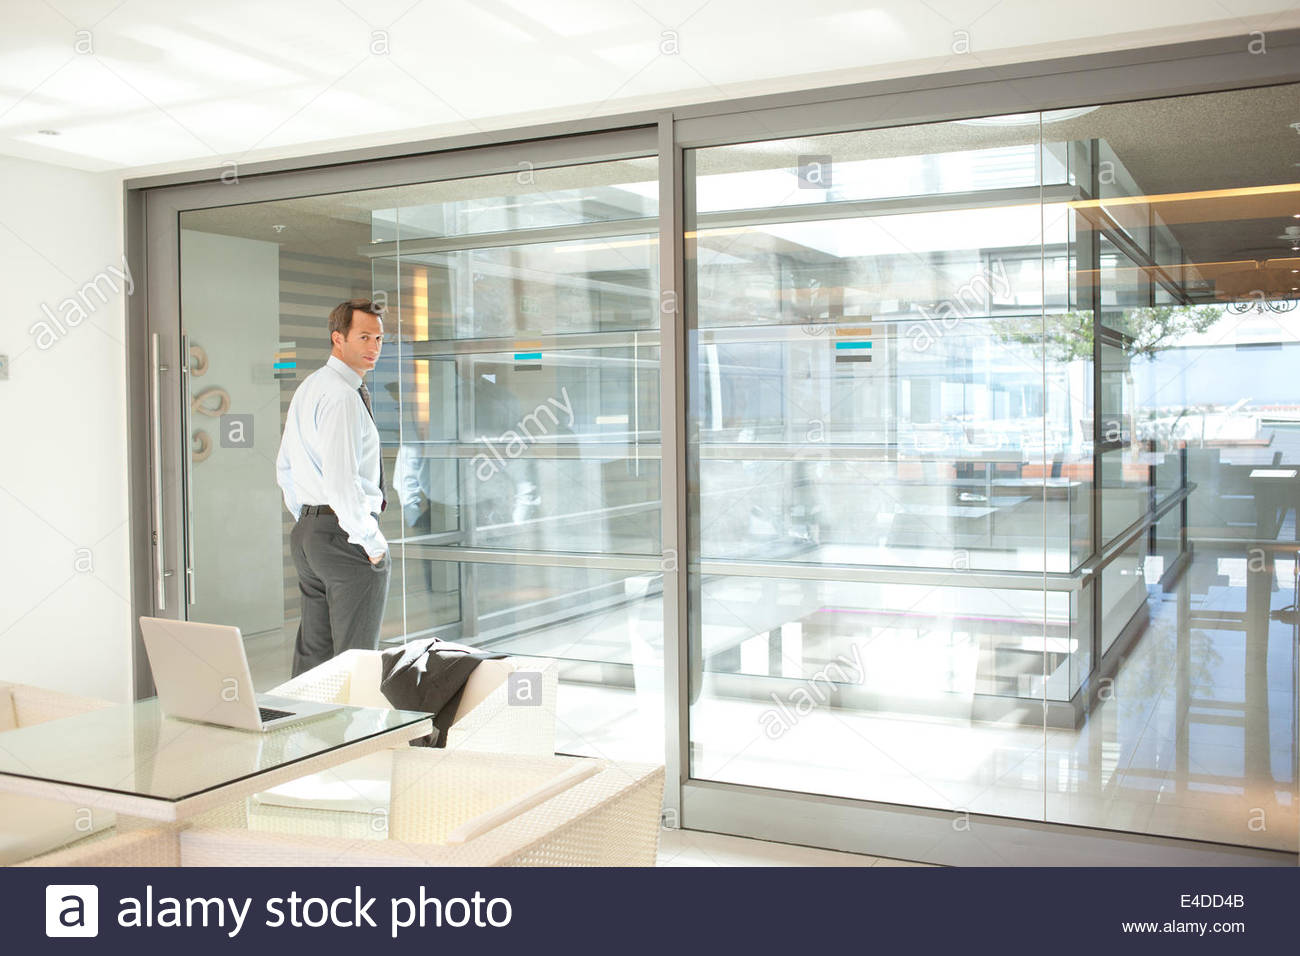 Businessman standing by glass wall in office - Stock Image